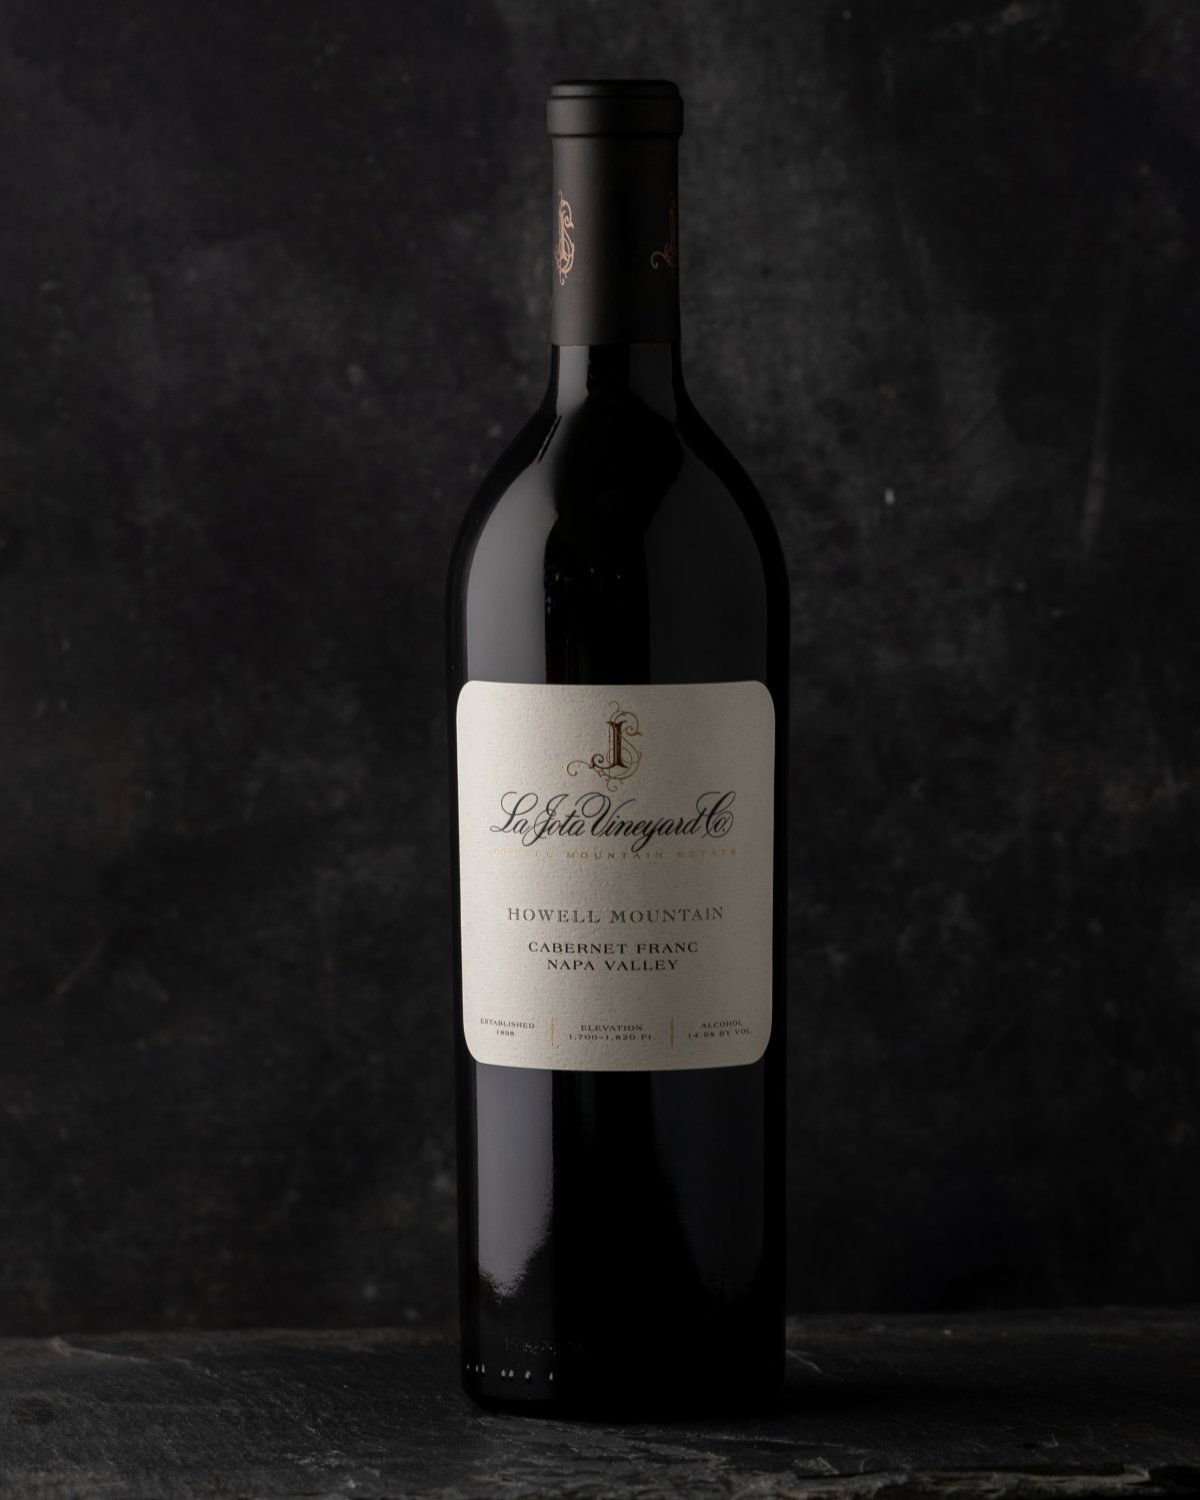 2017 La Jota Howell Mountain Cabernet Franc